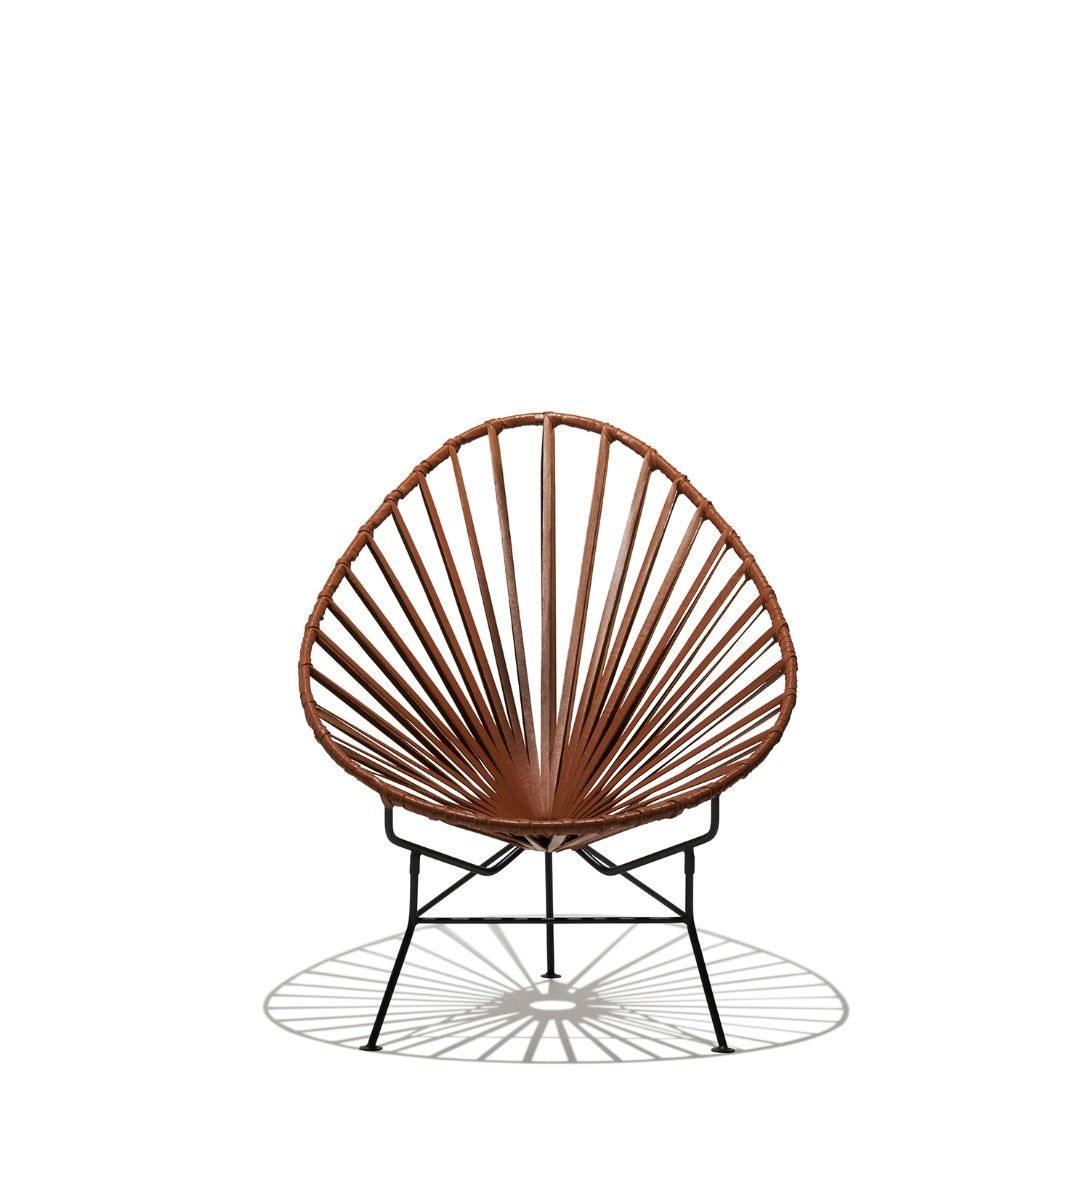 Astonishing Acapulco Lounge Chair Leather Chair Furniture Home Caraccident5 Cool Chair Designs And Ideas Caraccident5Info